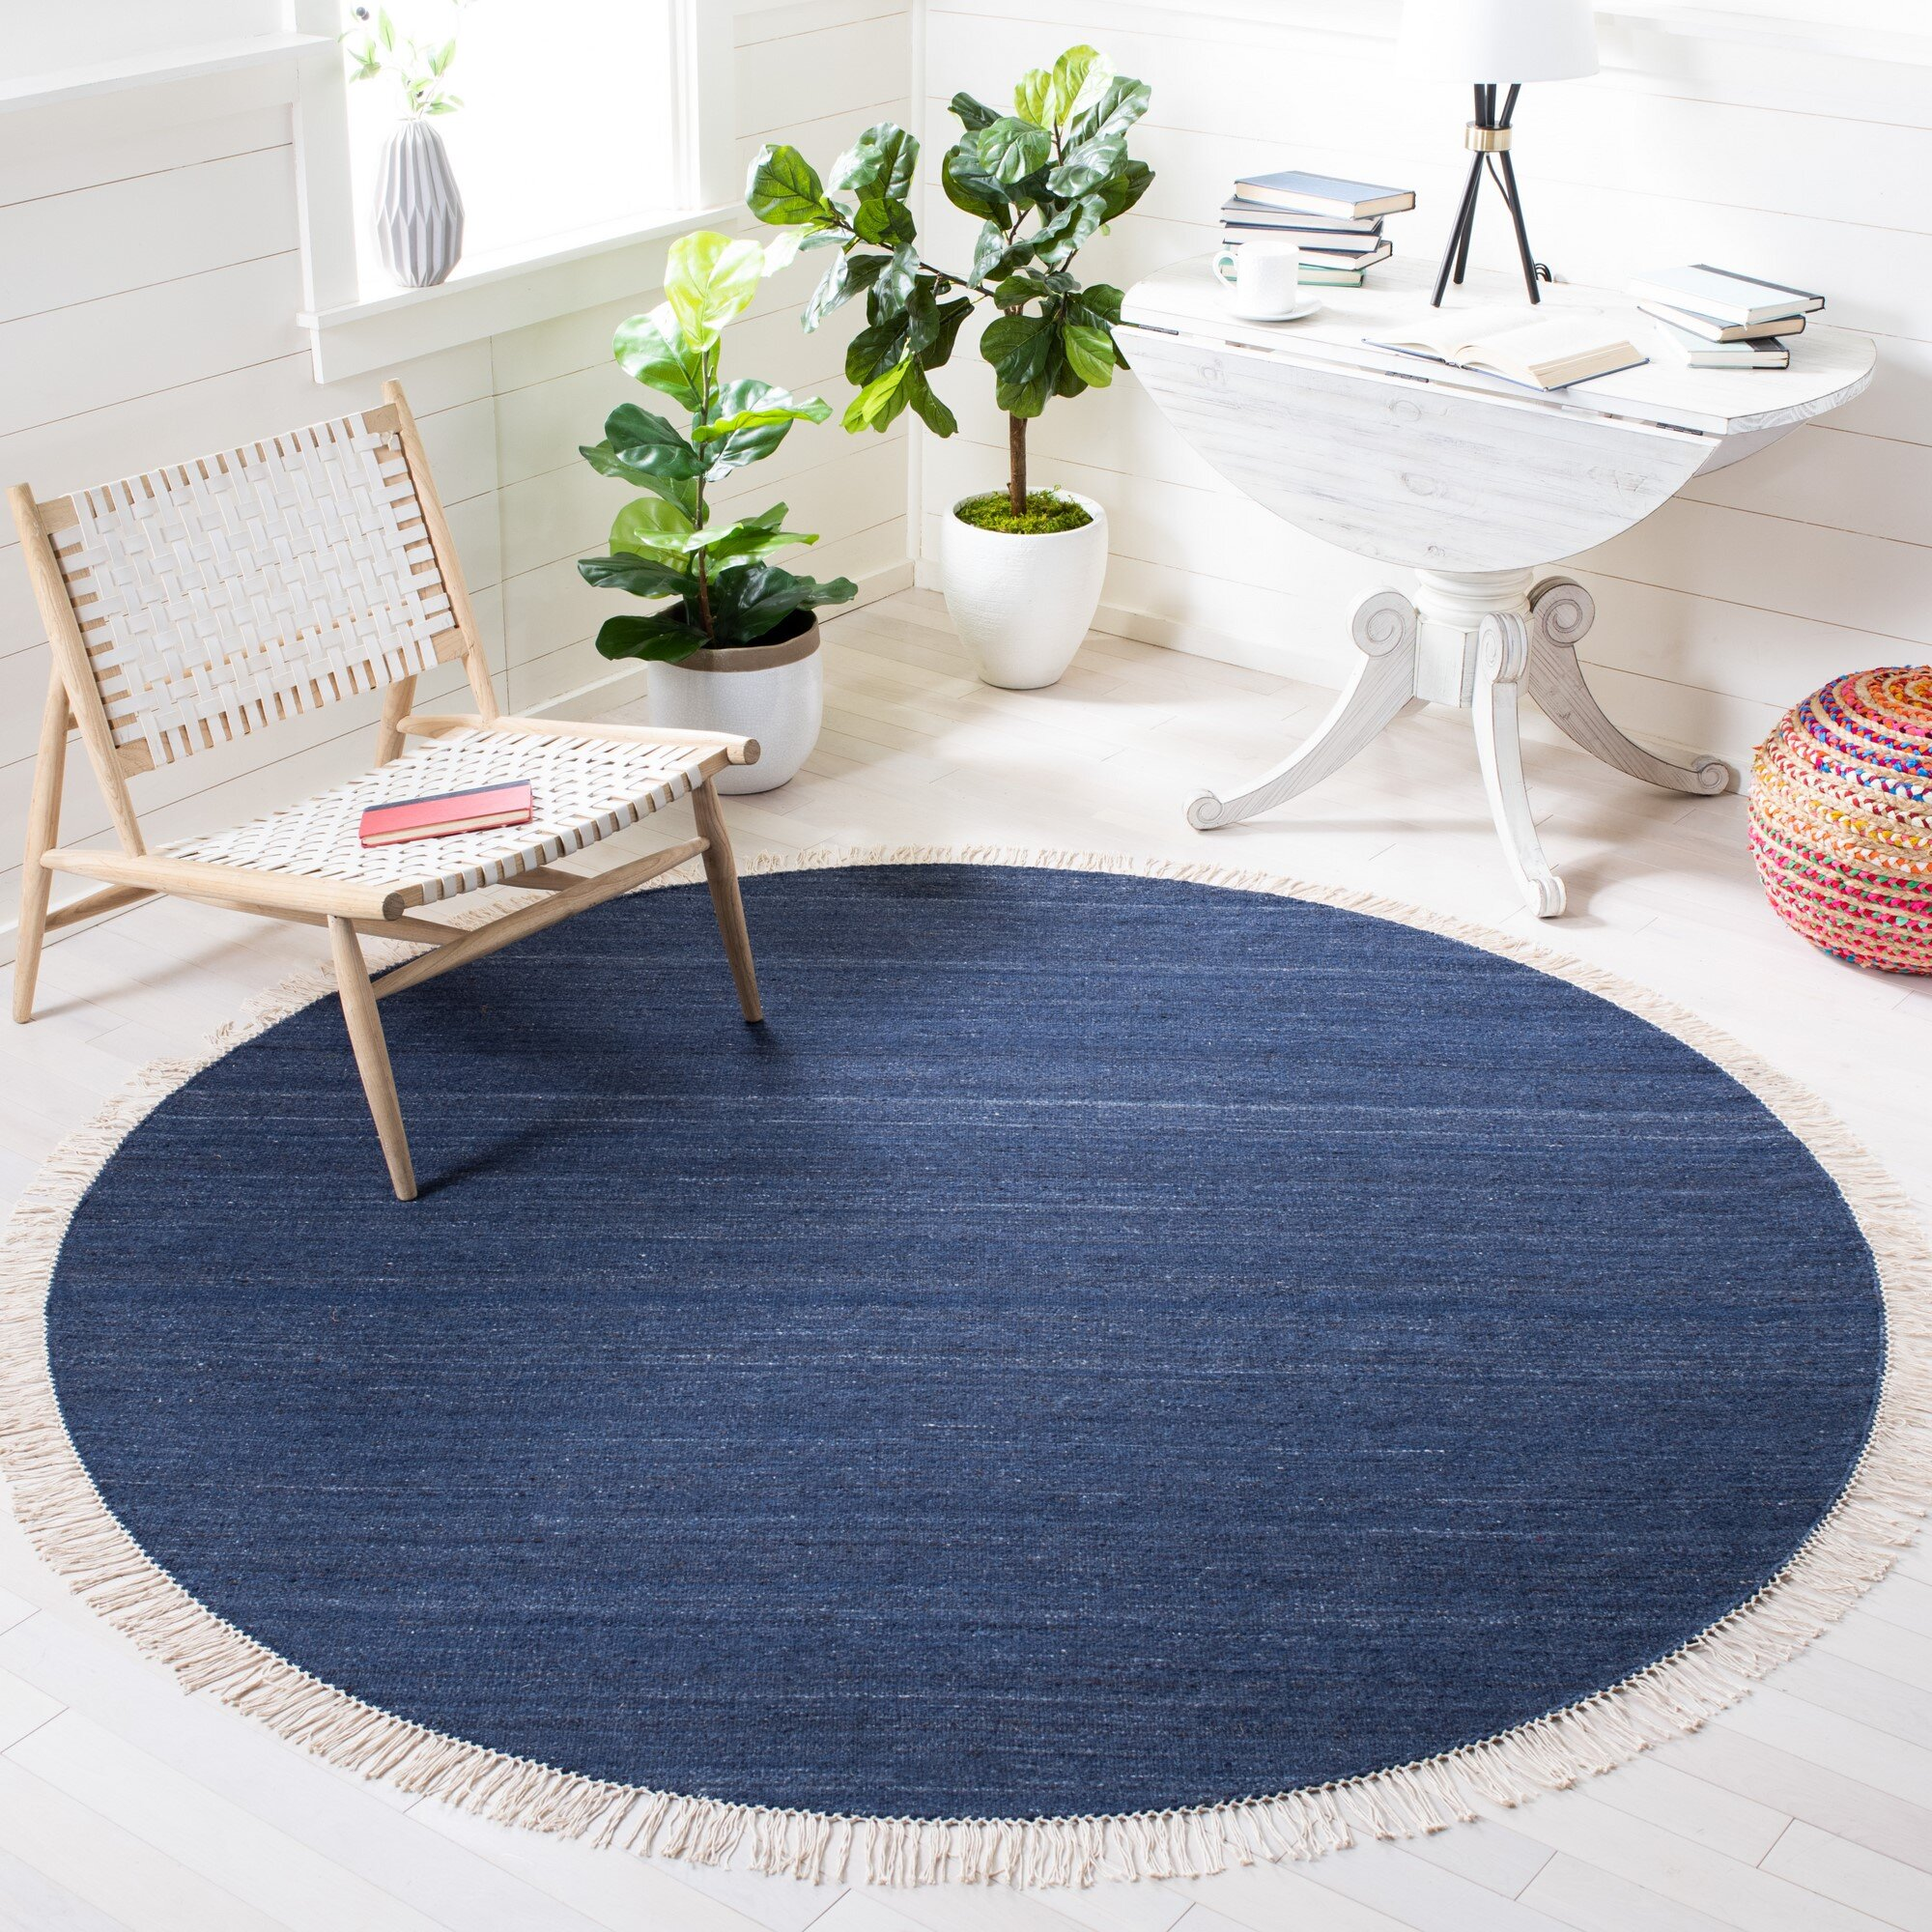 Round Striped Area Rugs You Ll Love In 2021 Wayfair